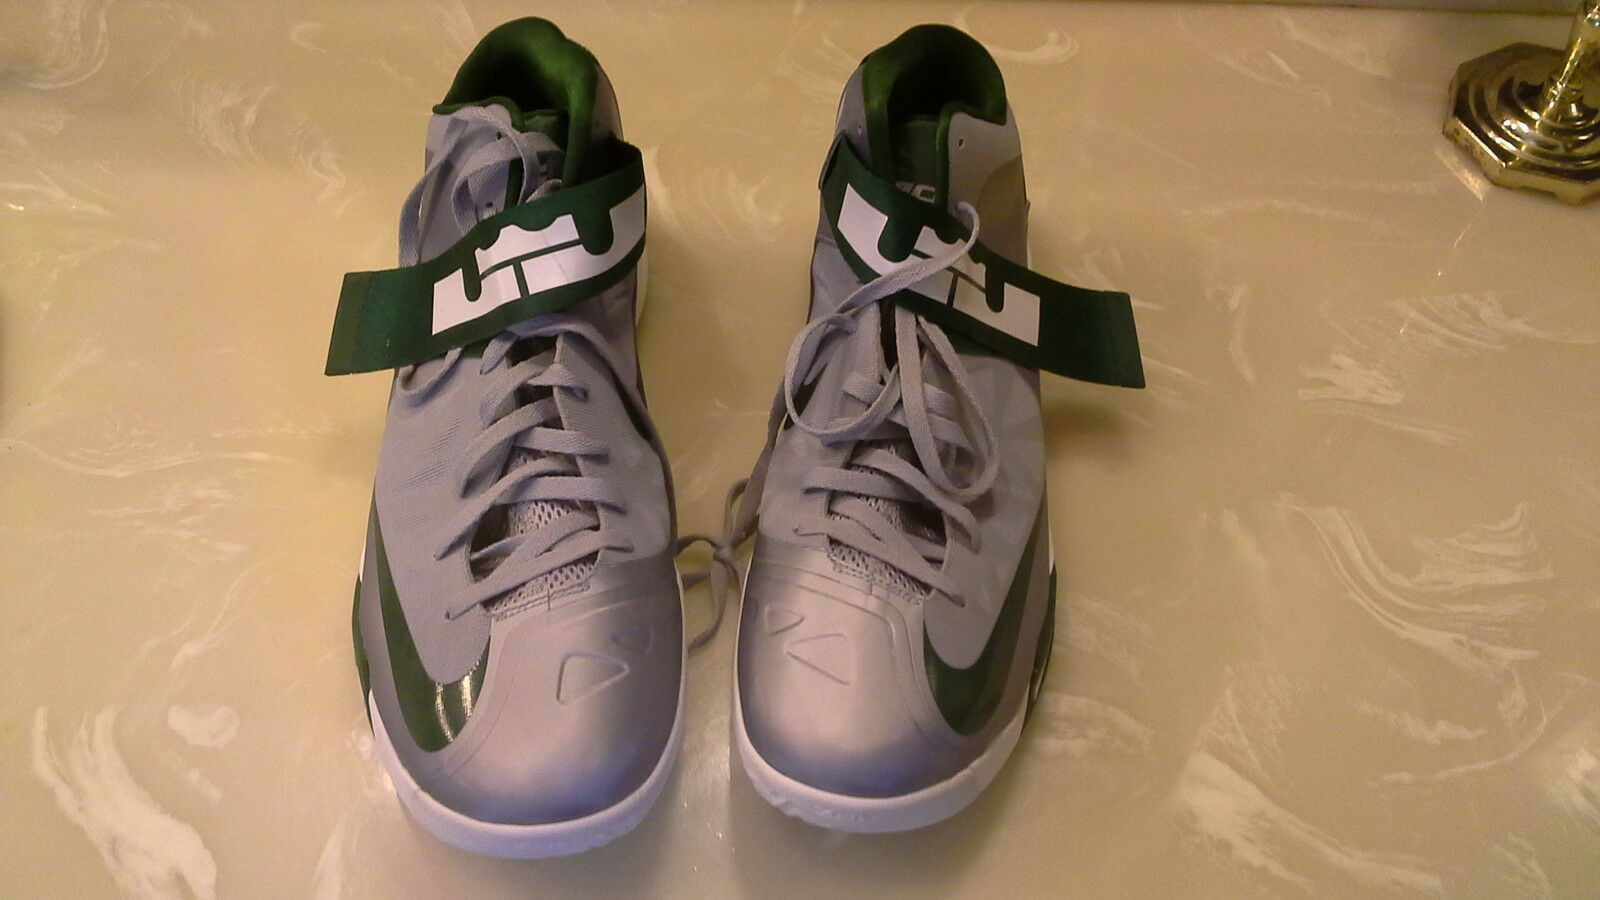 men's  lebrons size 17  Cheap and fashionable